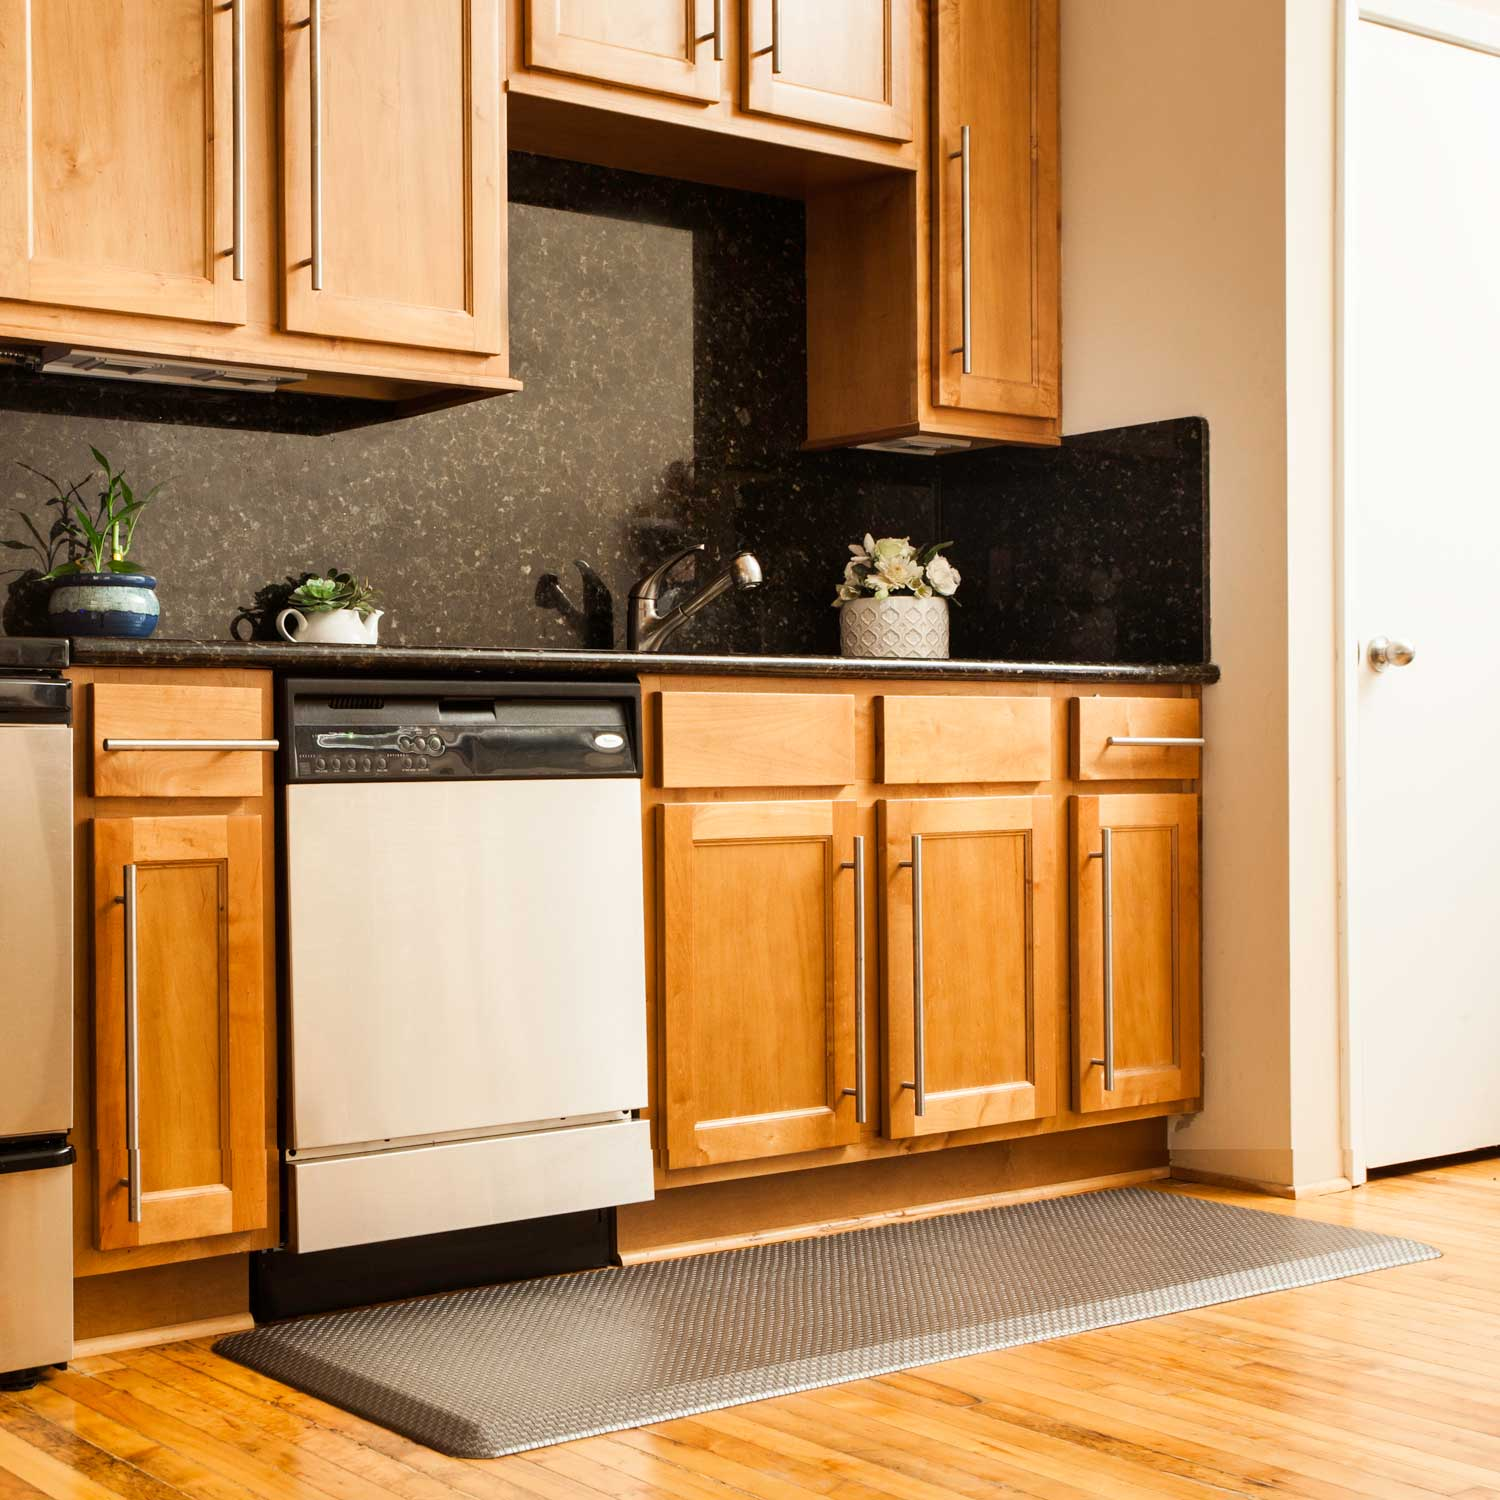 kitchen mats software ergonomic comfort designer the need for an efficient anti fatigue mat in a residential is just as important having one commercial most home kitchens floors